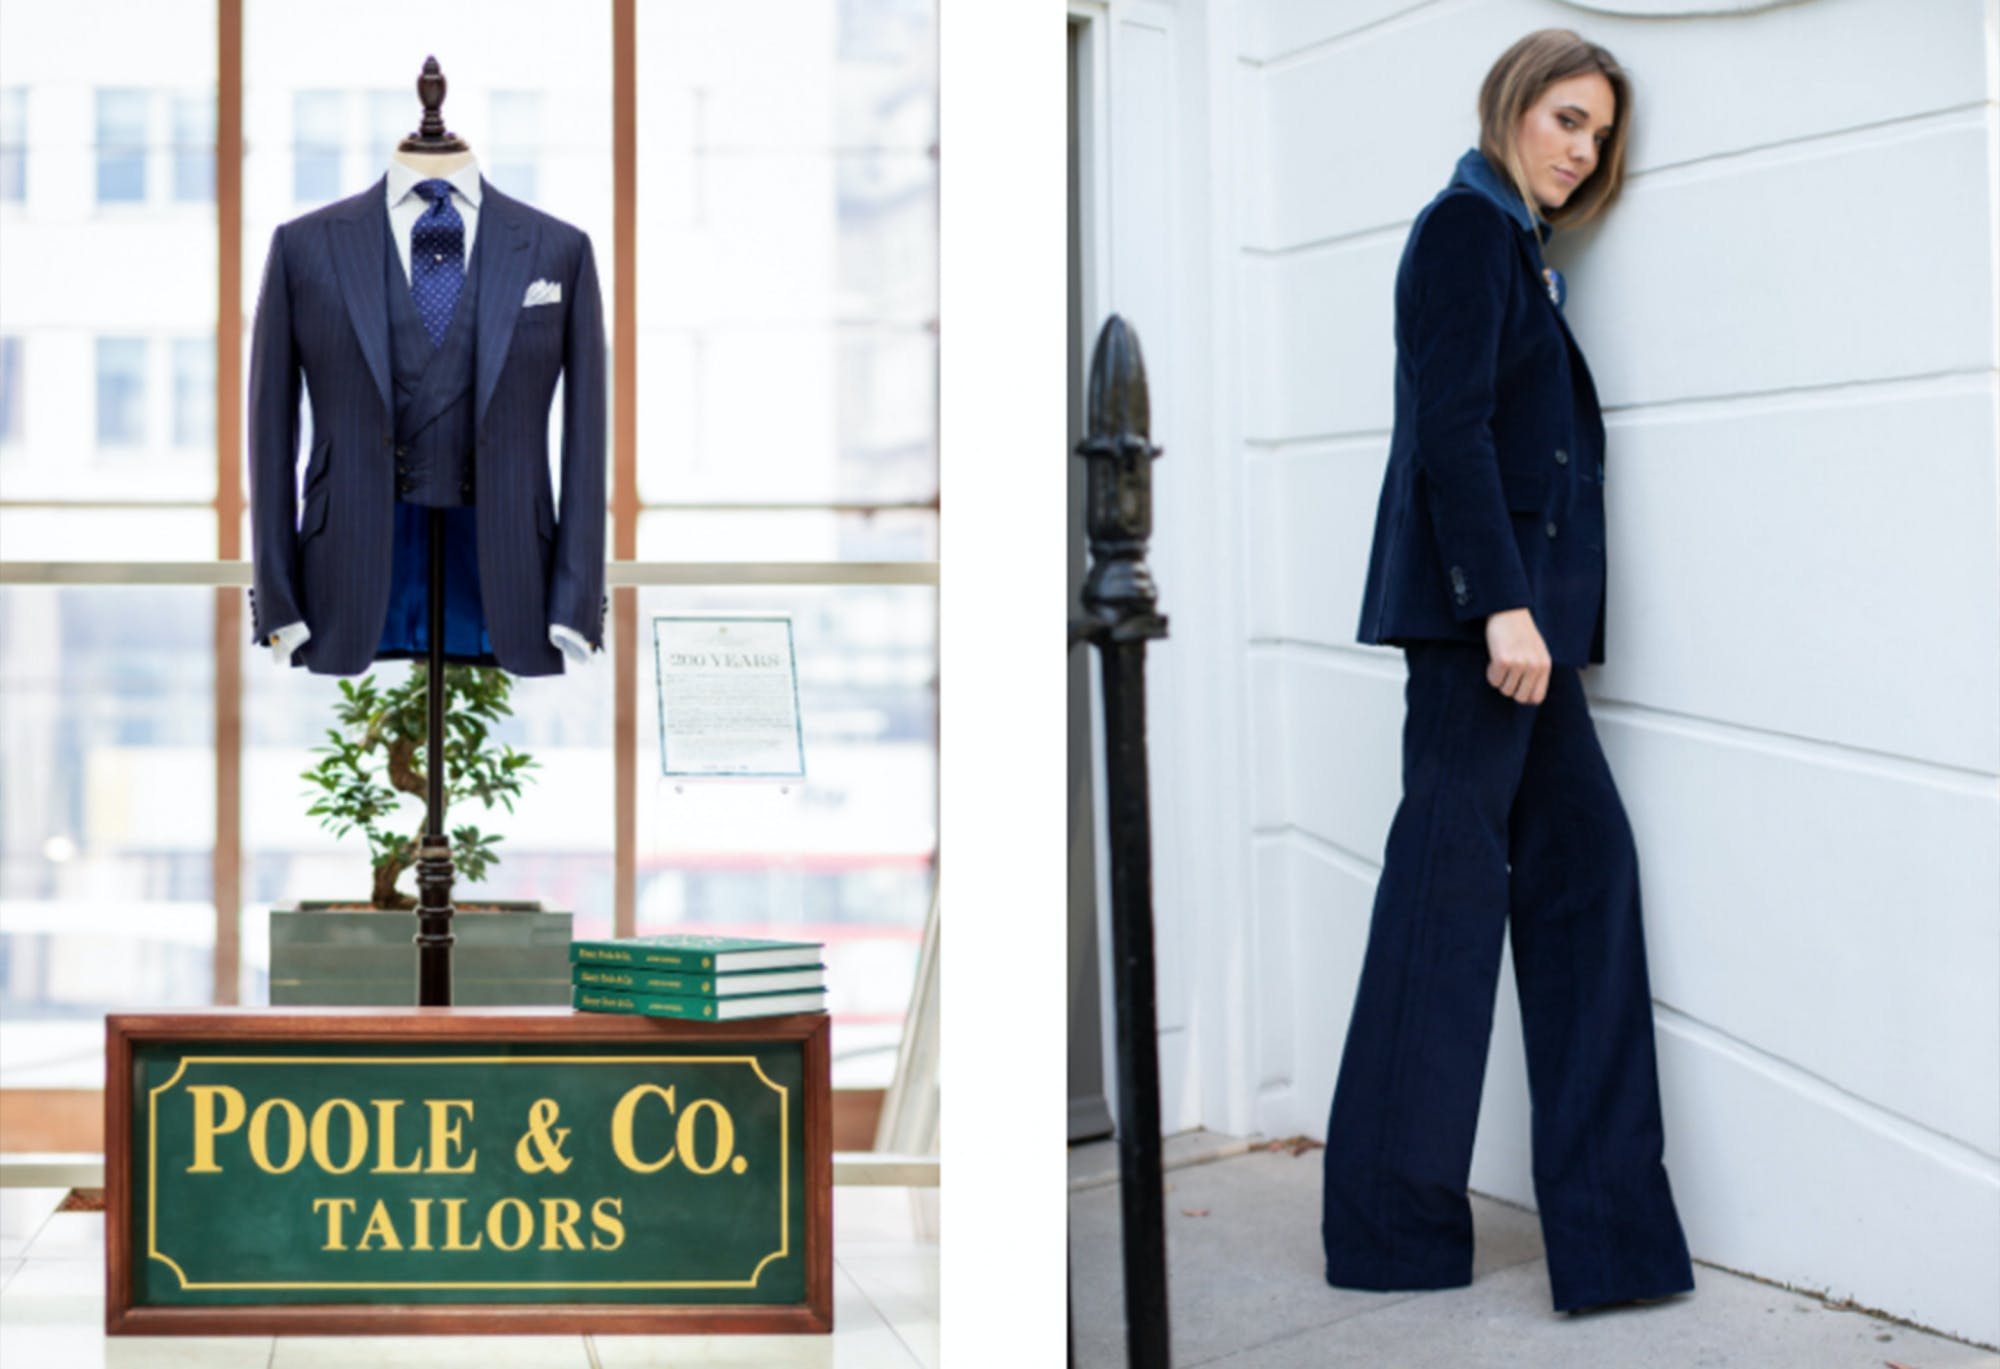 Walpole Editorial The British Suit in 2021 by Aleks Cvetkovic